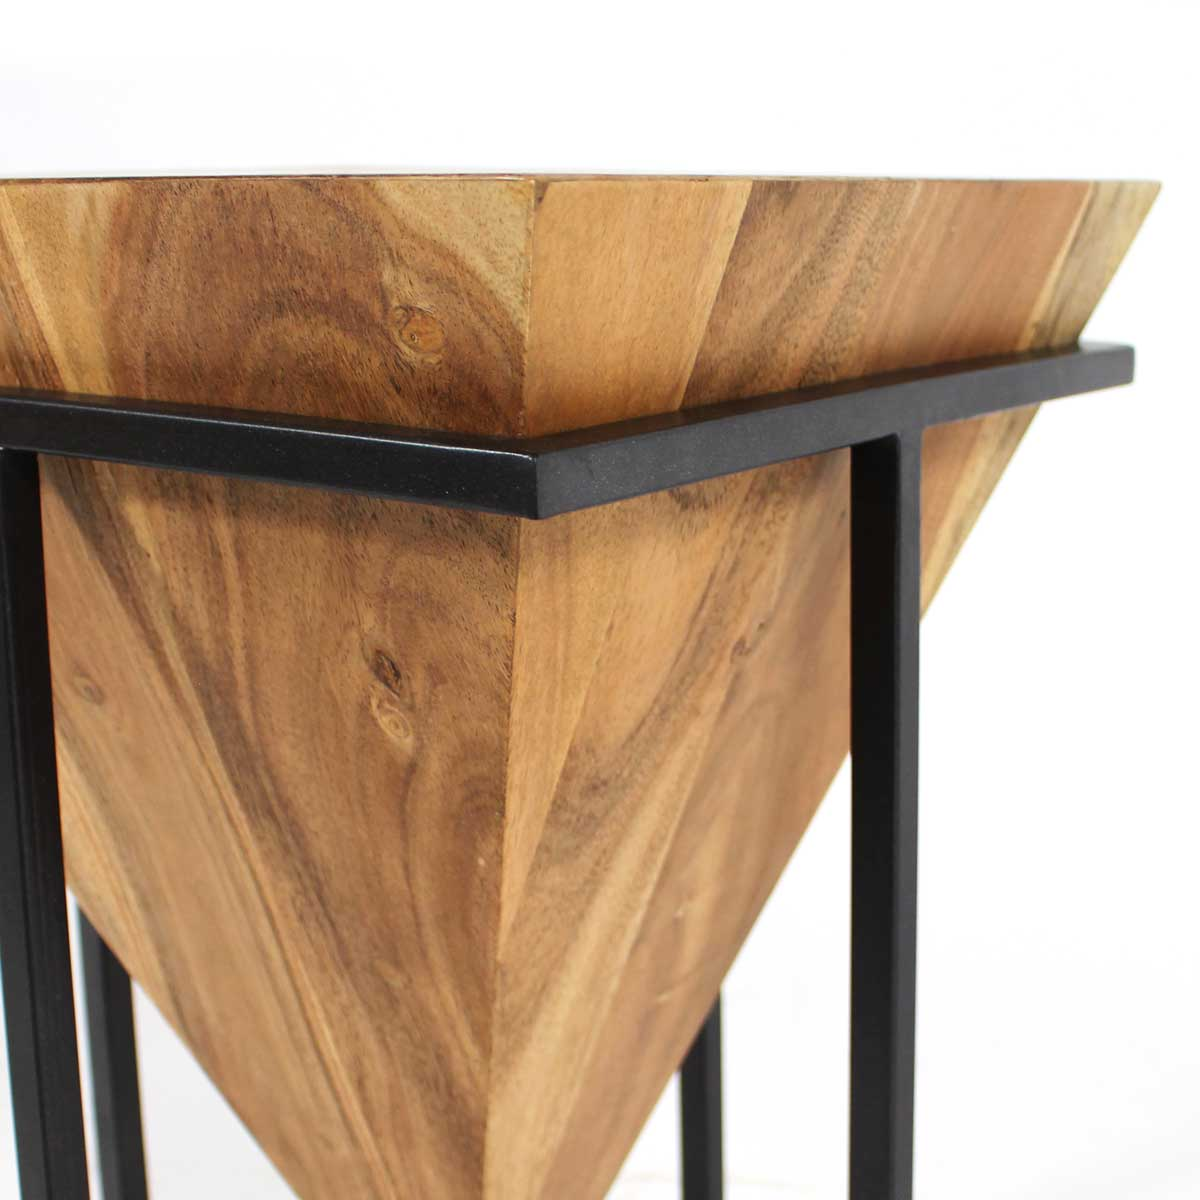 Table basse d'appoint design